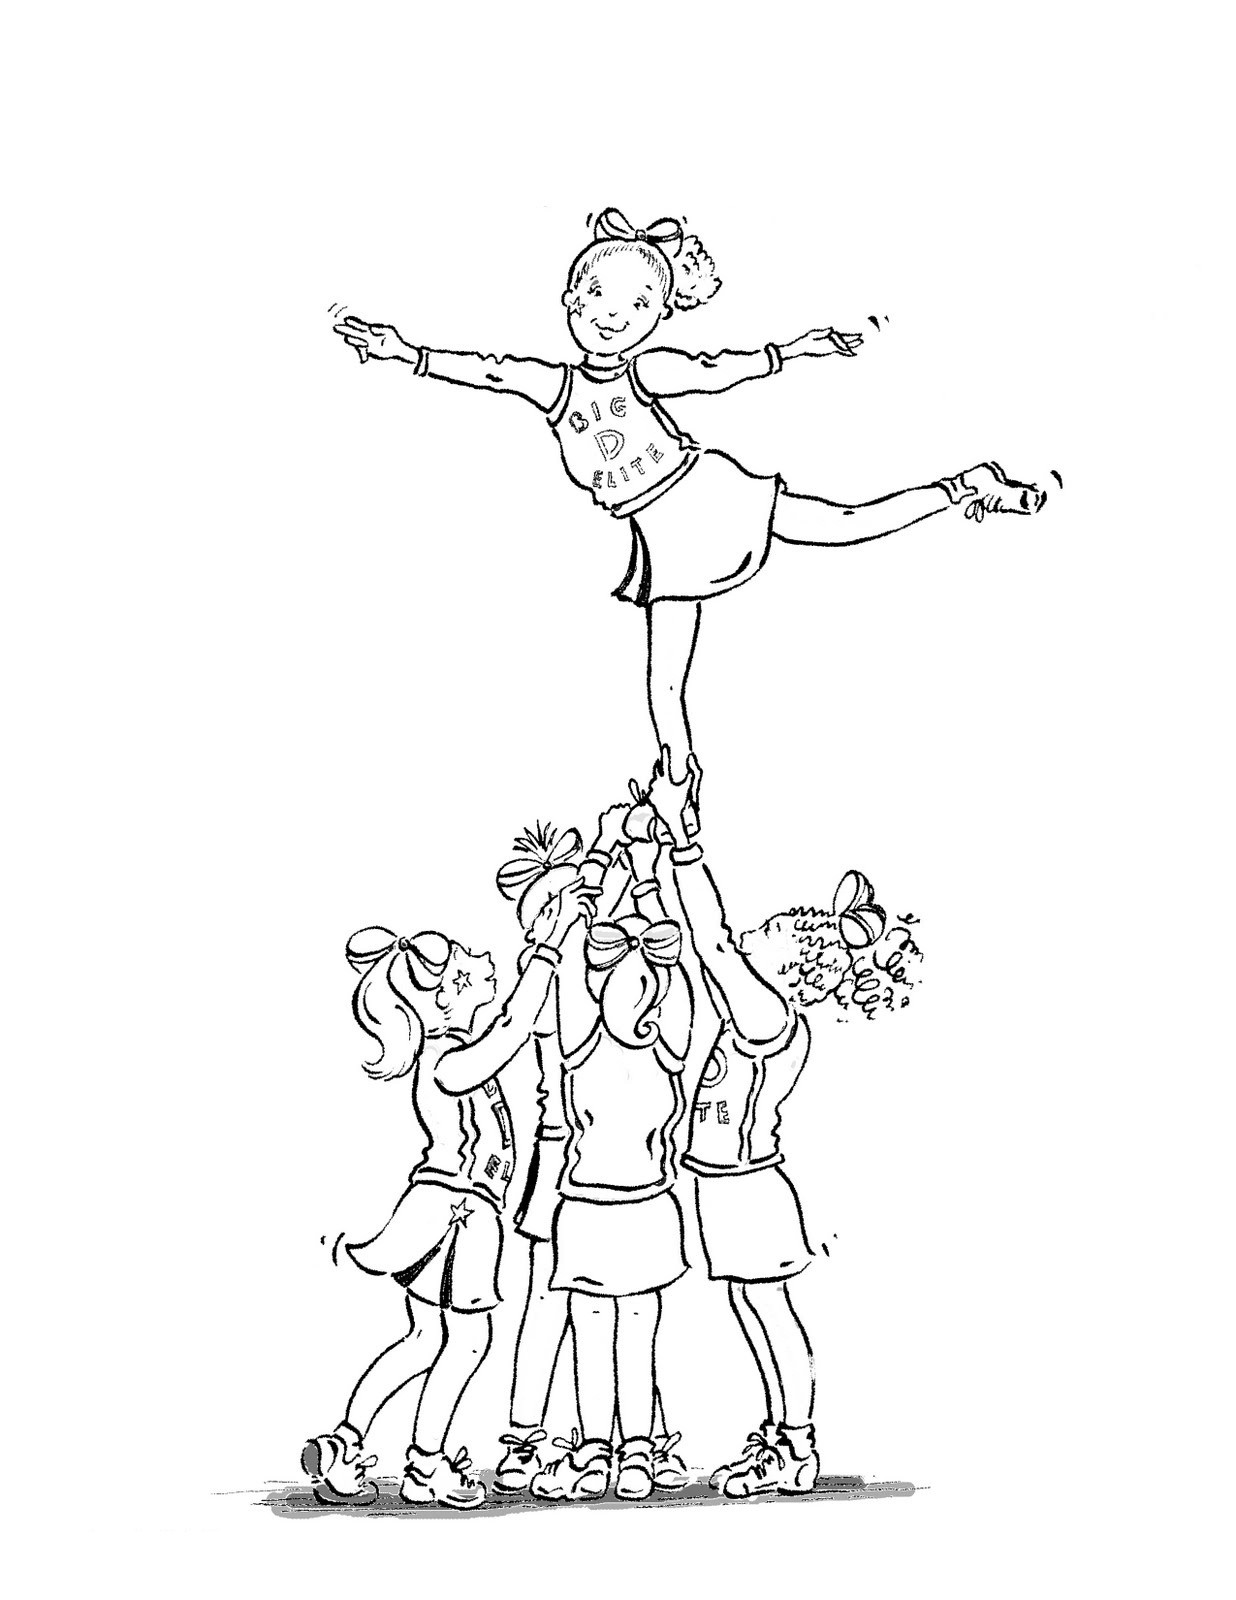 how to draw a cheerleader step by step cheer drawing at getdrawings free download step to cheerleader step draw by how a